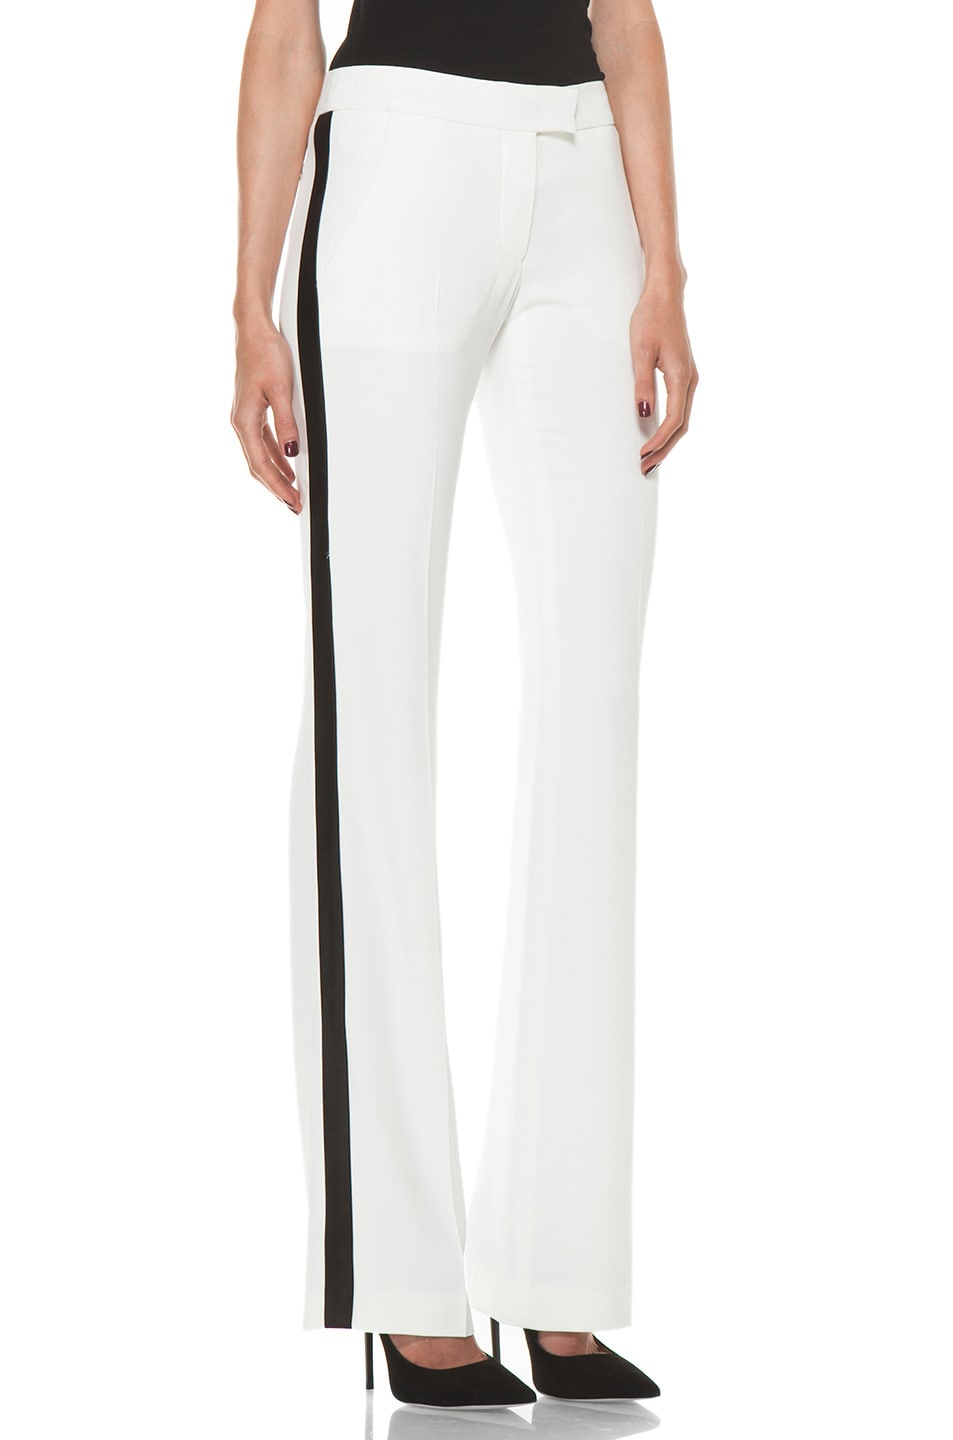 Image 3 of Alexander McQueen Narrow Viscose-Blend Tuxedo Trouser in Ivory